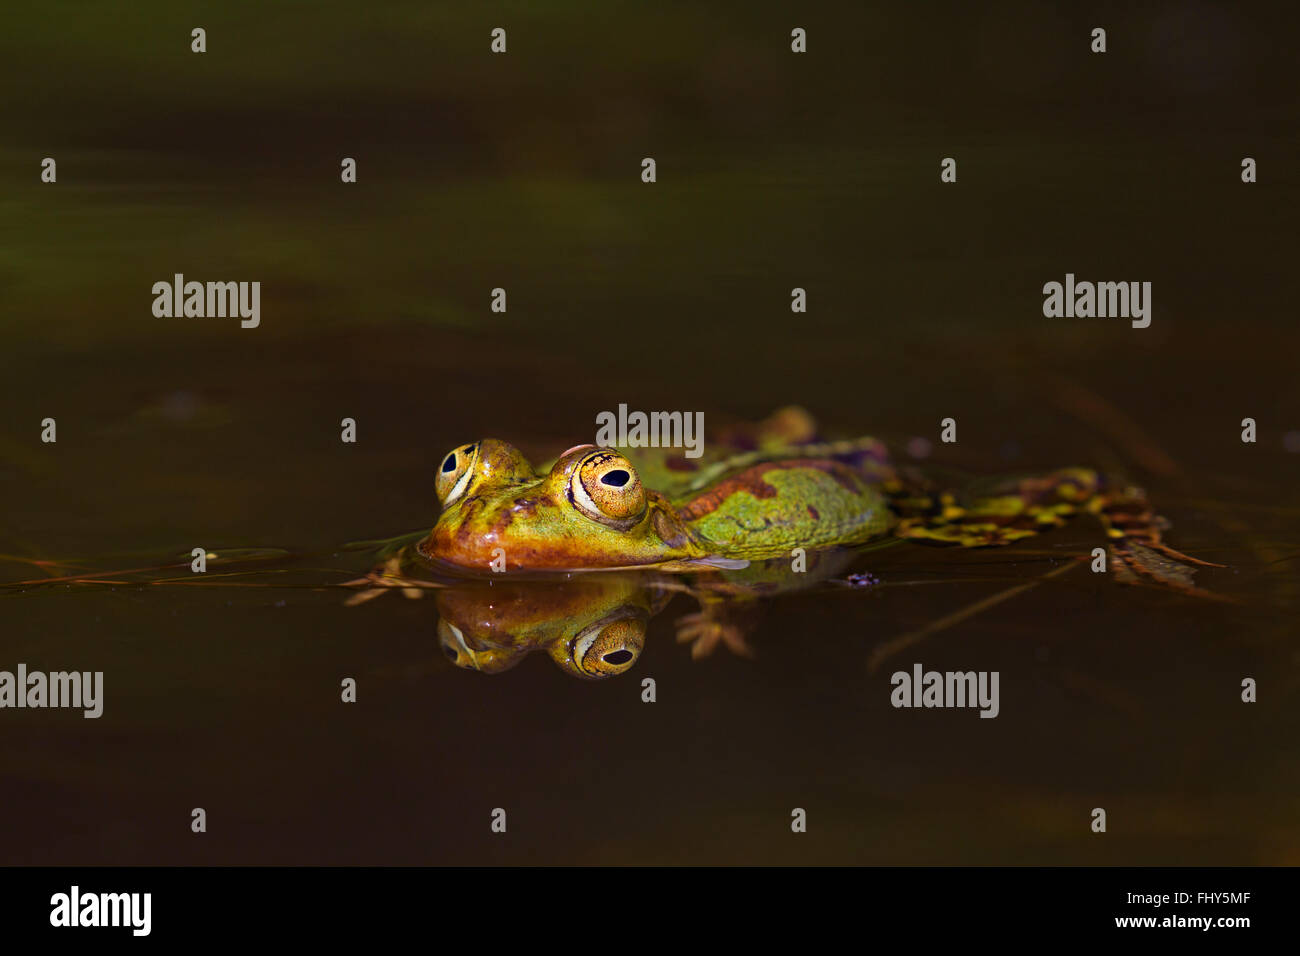 Edible frog / common water frog / green frog (Pelophylax kl. esculentus / Rana kl. esculenta) floating in pond - Stock Image